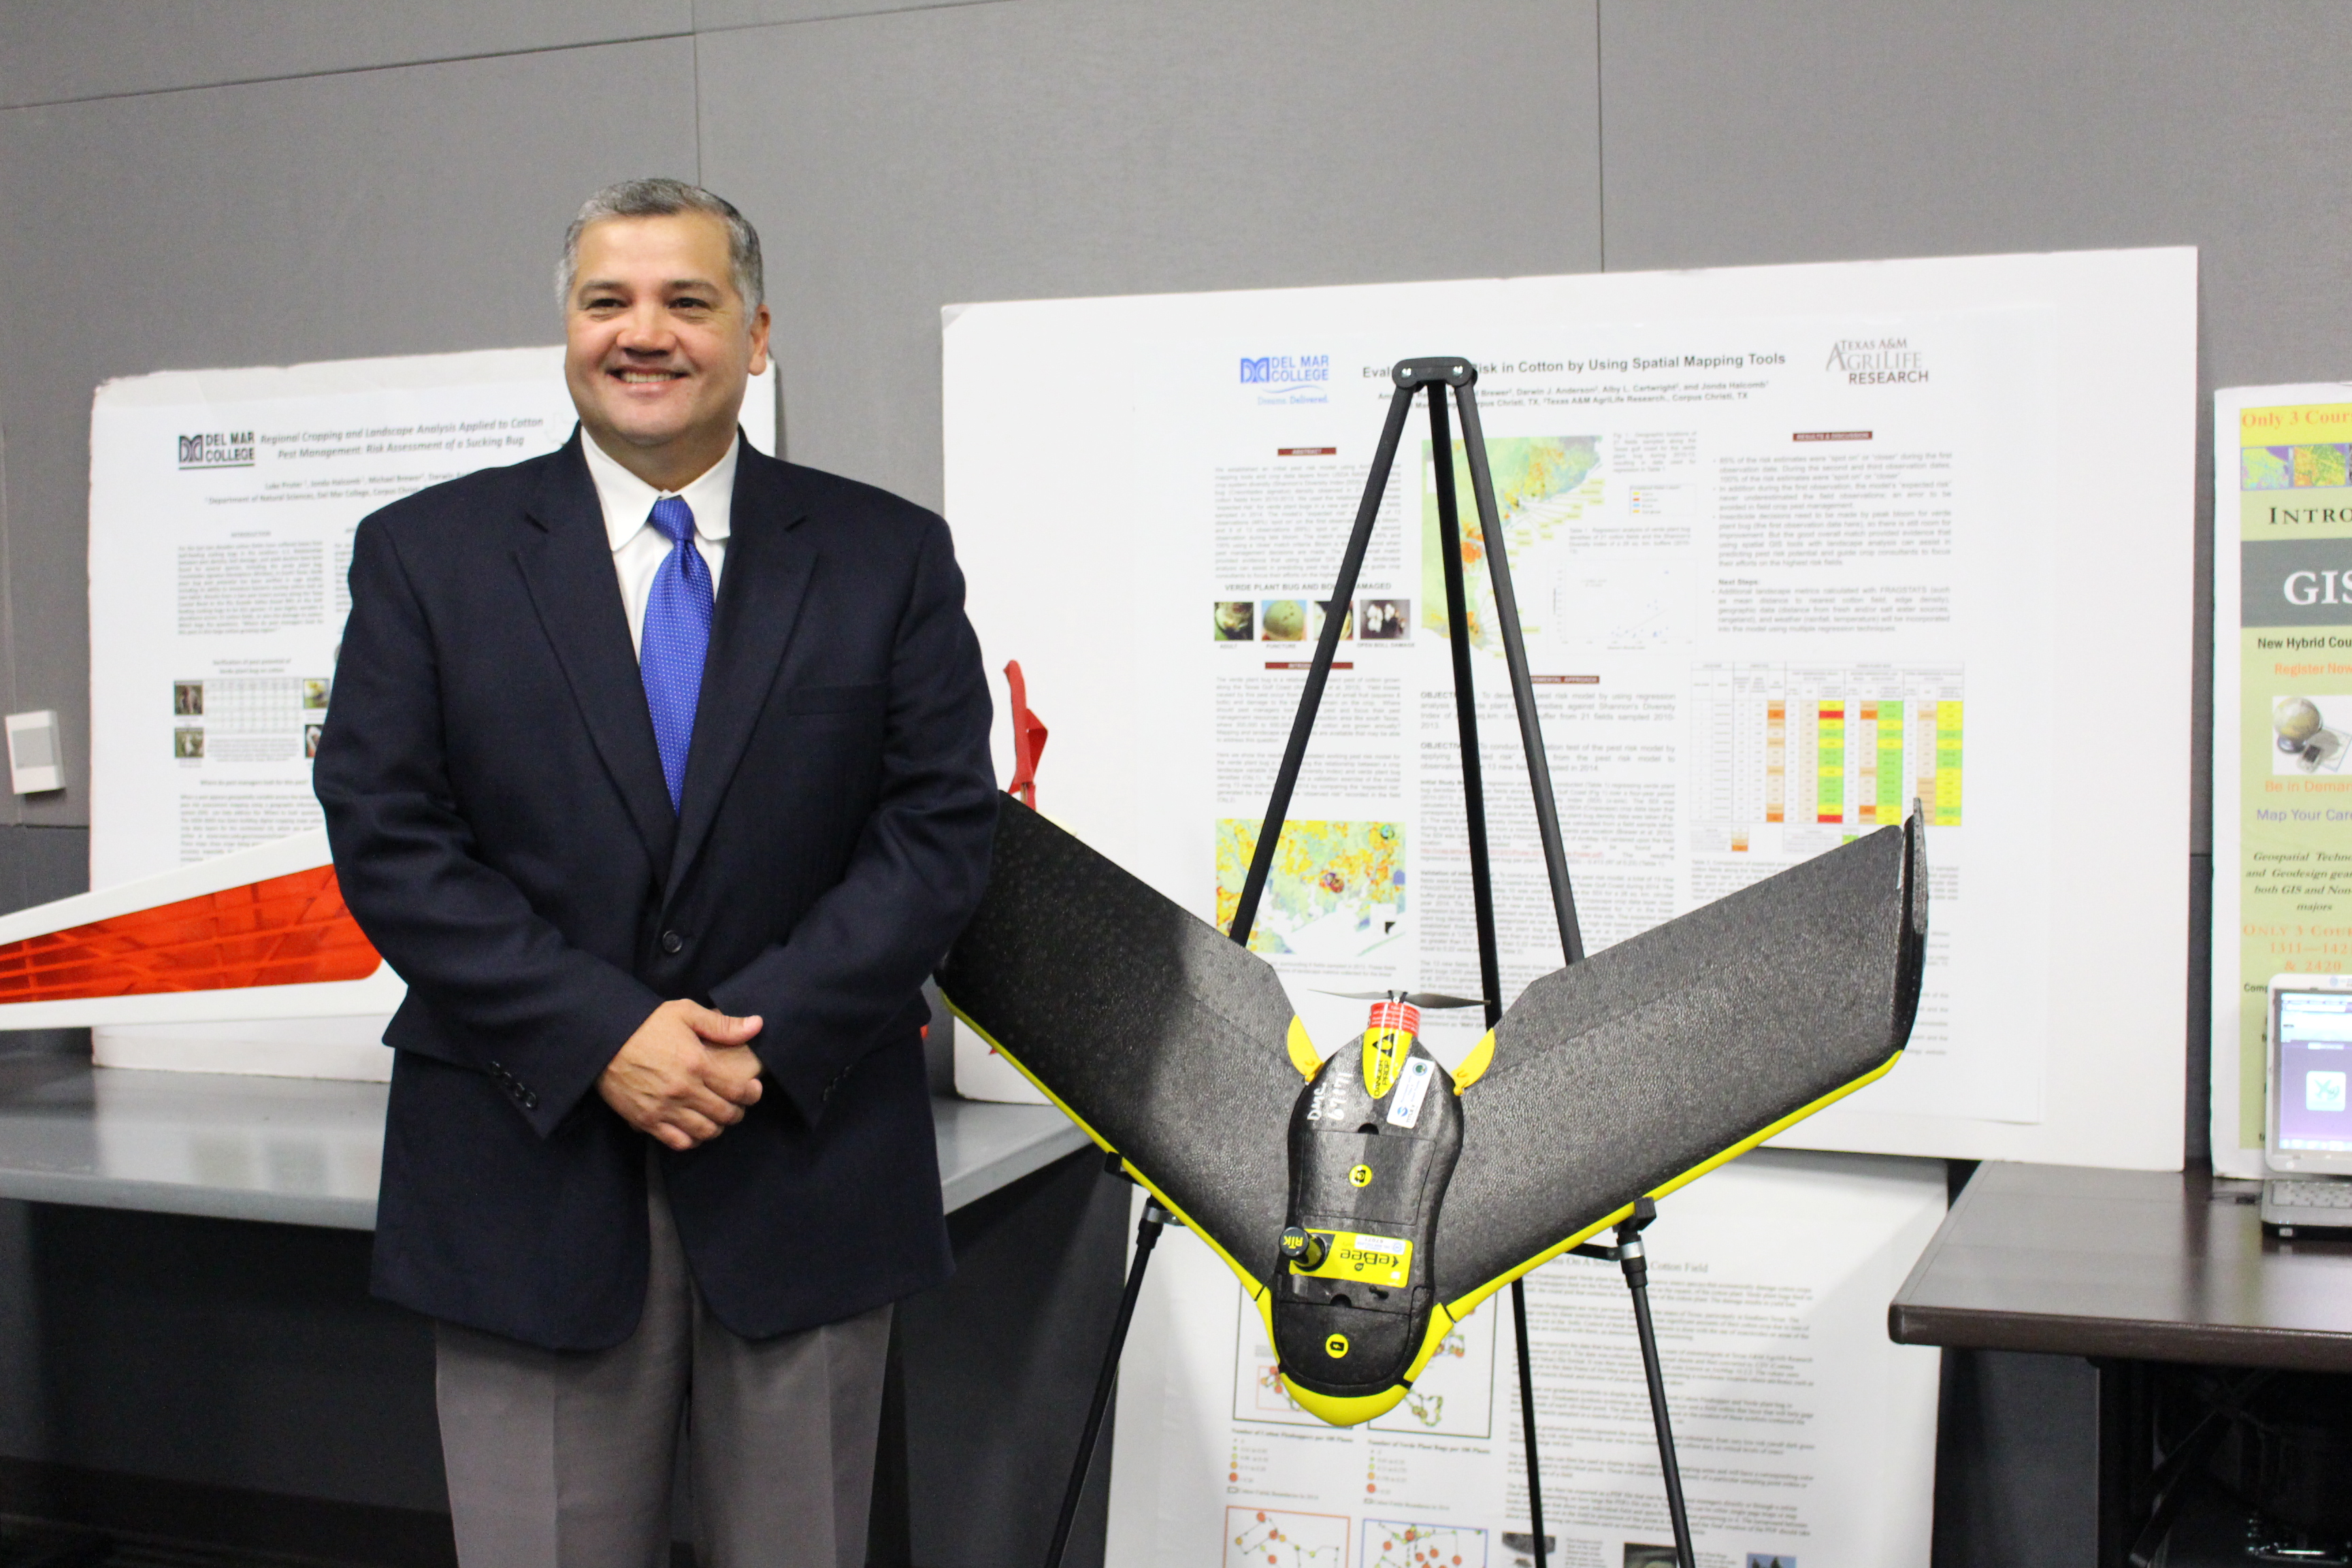 President Mark Escamilla stands next to Del Mar's GIS drone at the event.